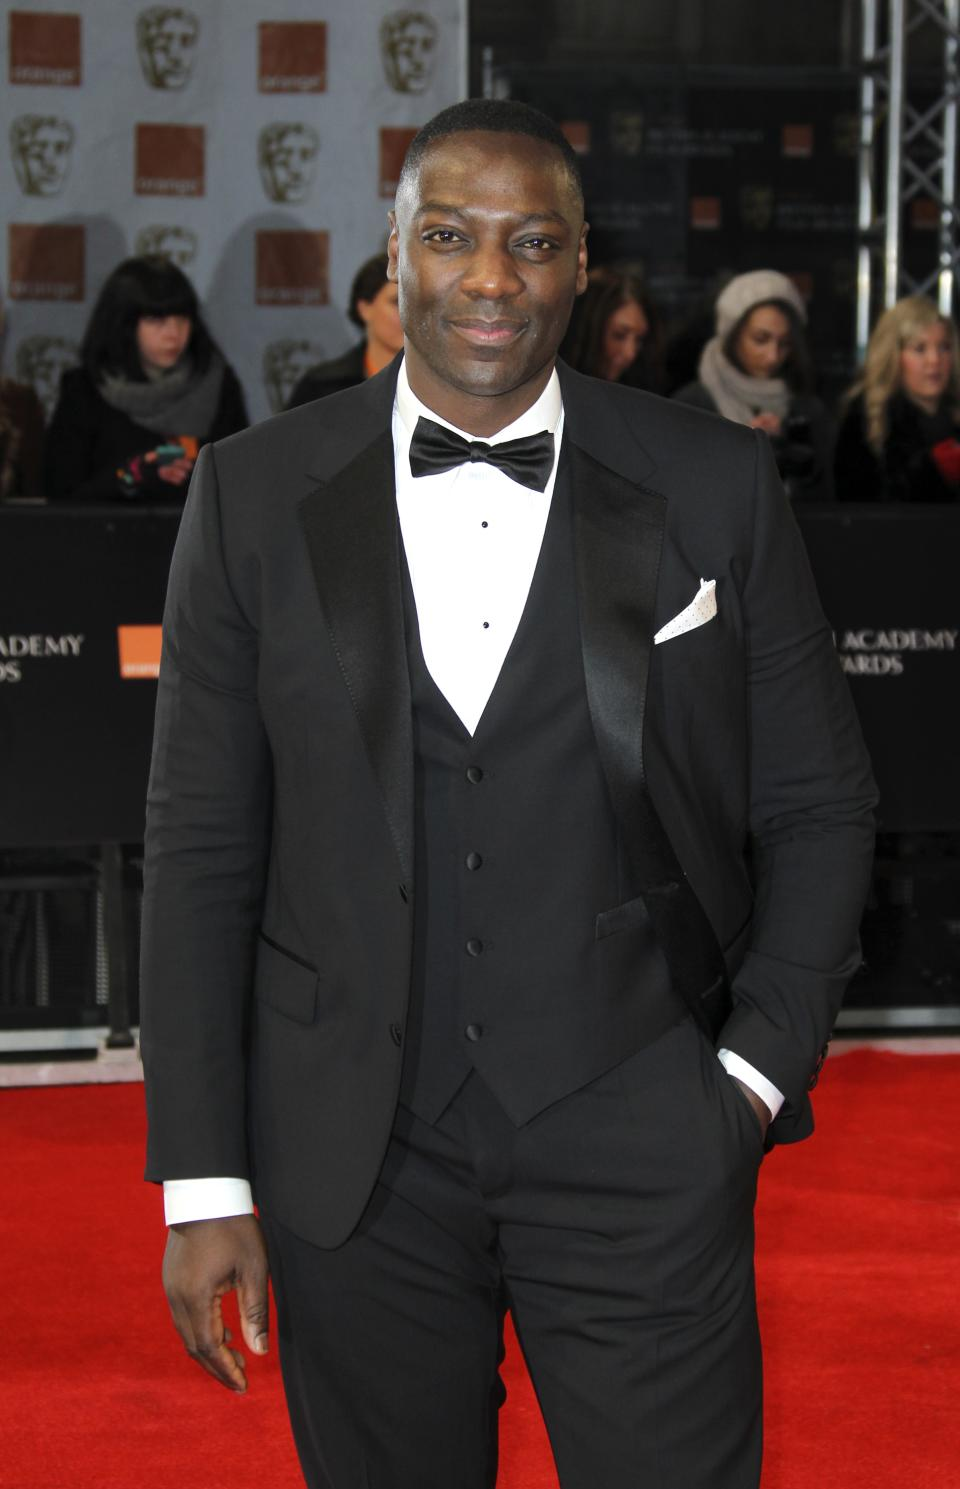 Actor Adewale Akinnuoye-Agbaje arrives for the BAFTA Film Awards 2012, at The Royal Opera House in London, Sunday, Feb. 12, 2012. (AP Photo/Joel Ryan)